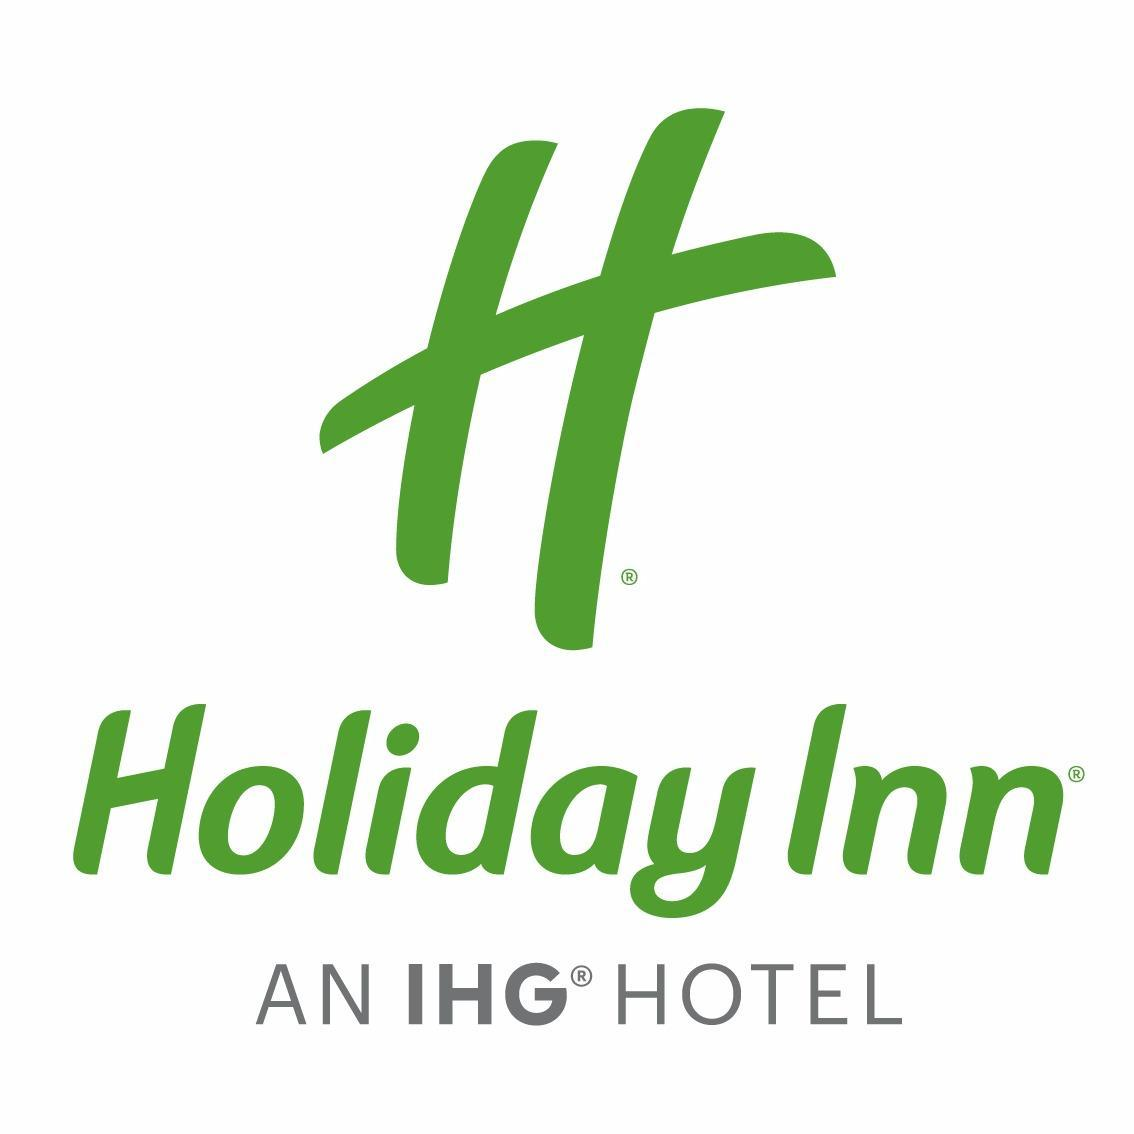 Holiday Inn Cleveland Northeast - Mentor - Mentor, OH - Hotels & Motels